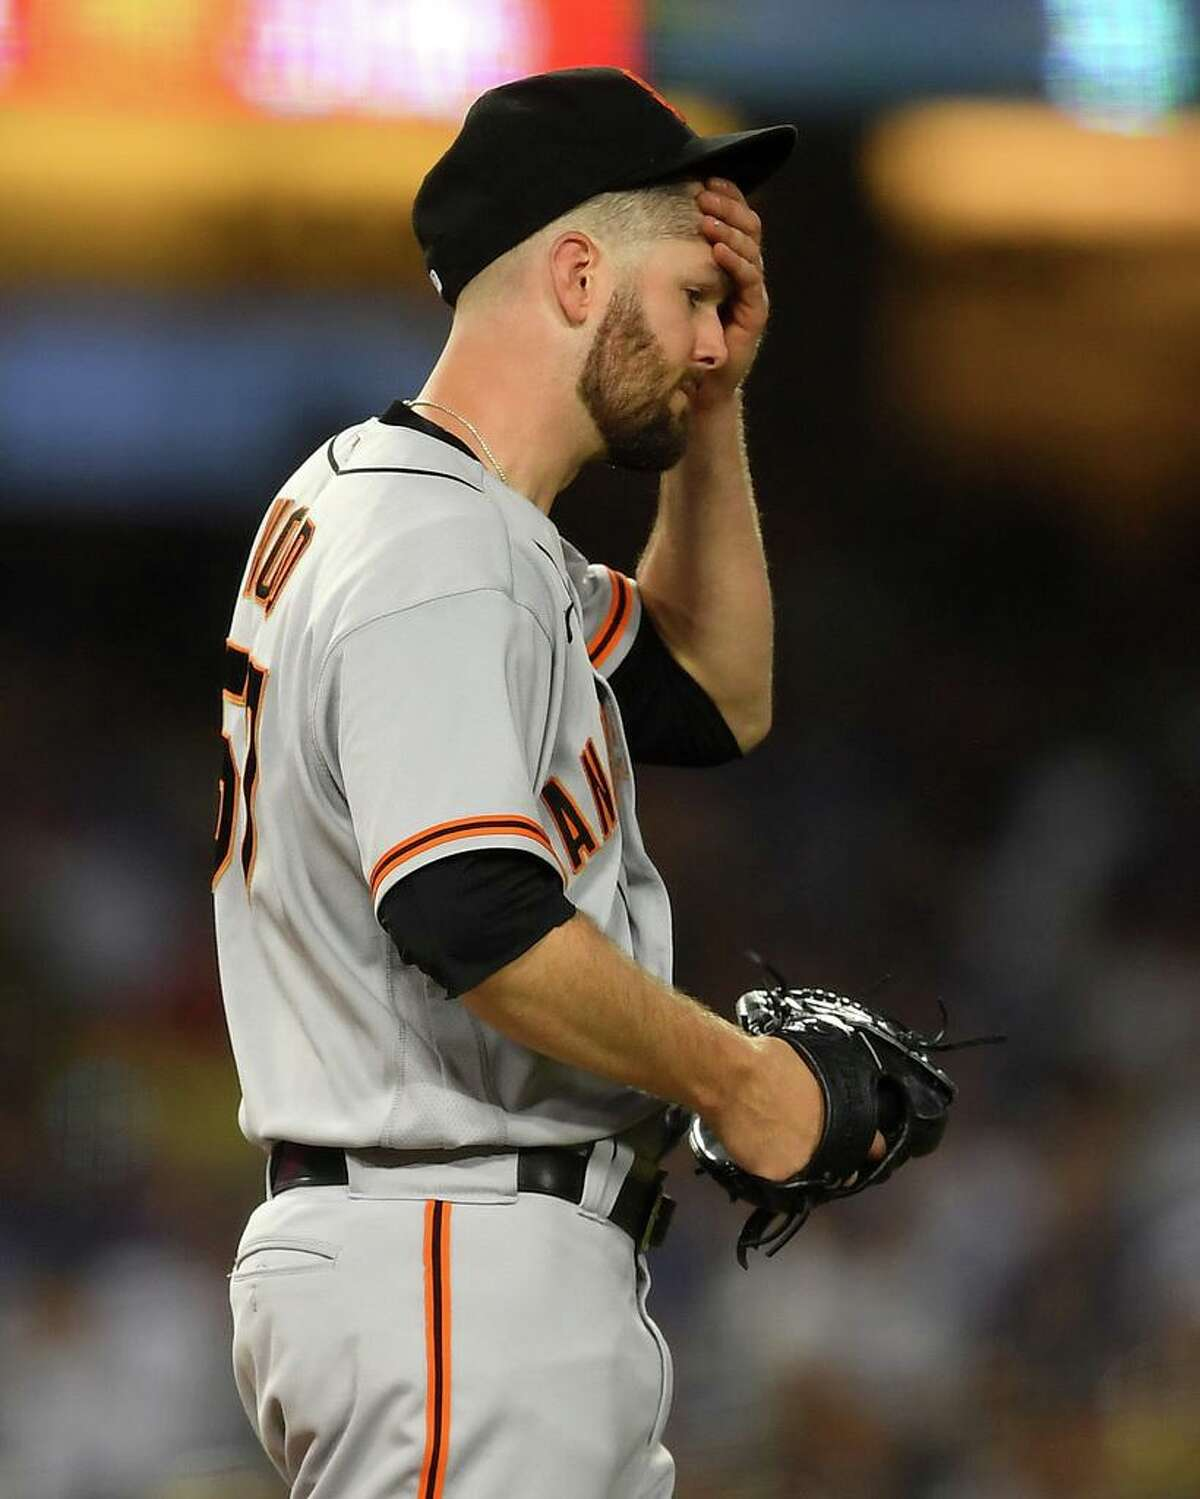 LOS ANGELES, CA - JULY 20: Alex Wood #57 of the San Francisco Giants wipes his brow after hitting two consecutive batters in the fifth inning against the Los Angeles Dodgers at Dodger Stadium on July 20, 2021 in Los Angeles, California. (Photo by Jayne Kamin-Oncea/Getty Images)